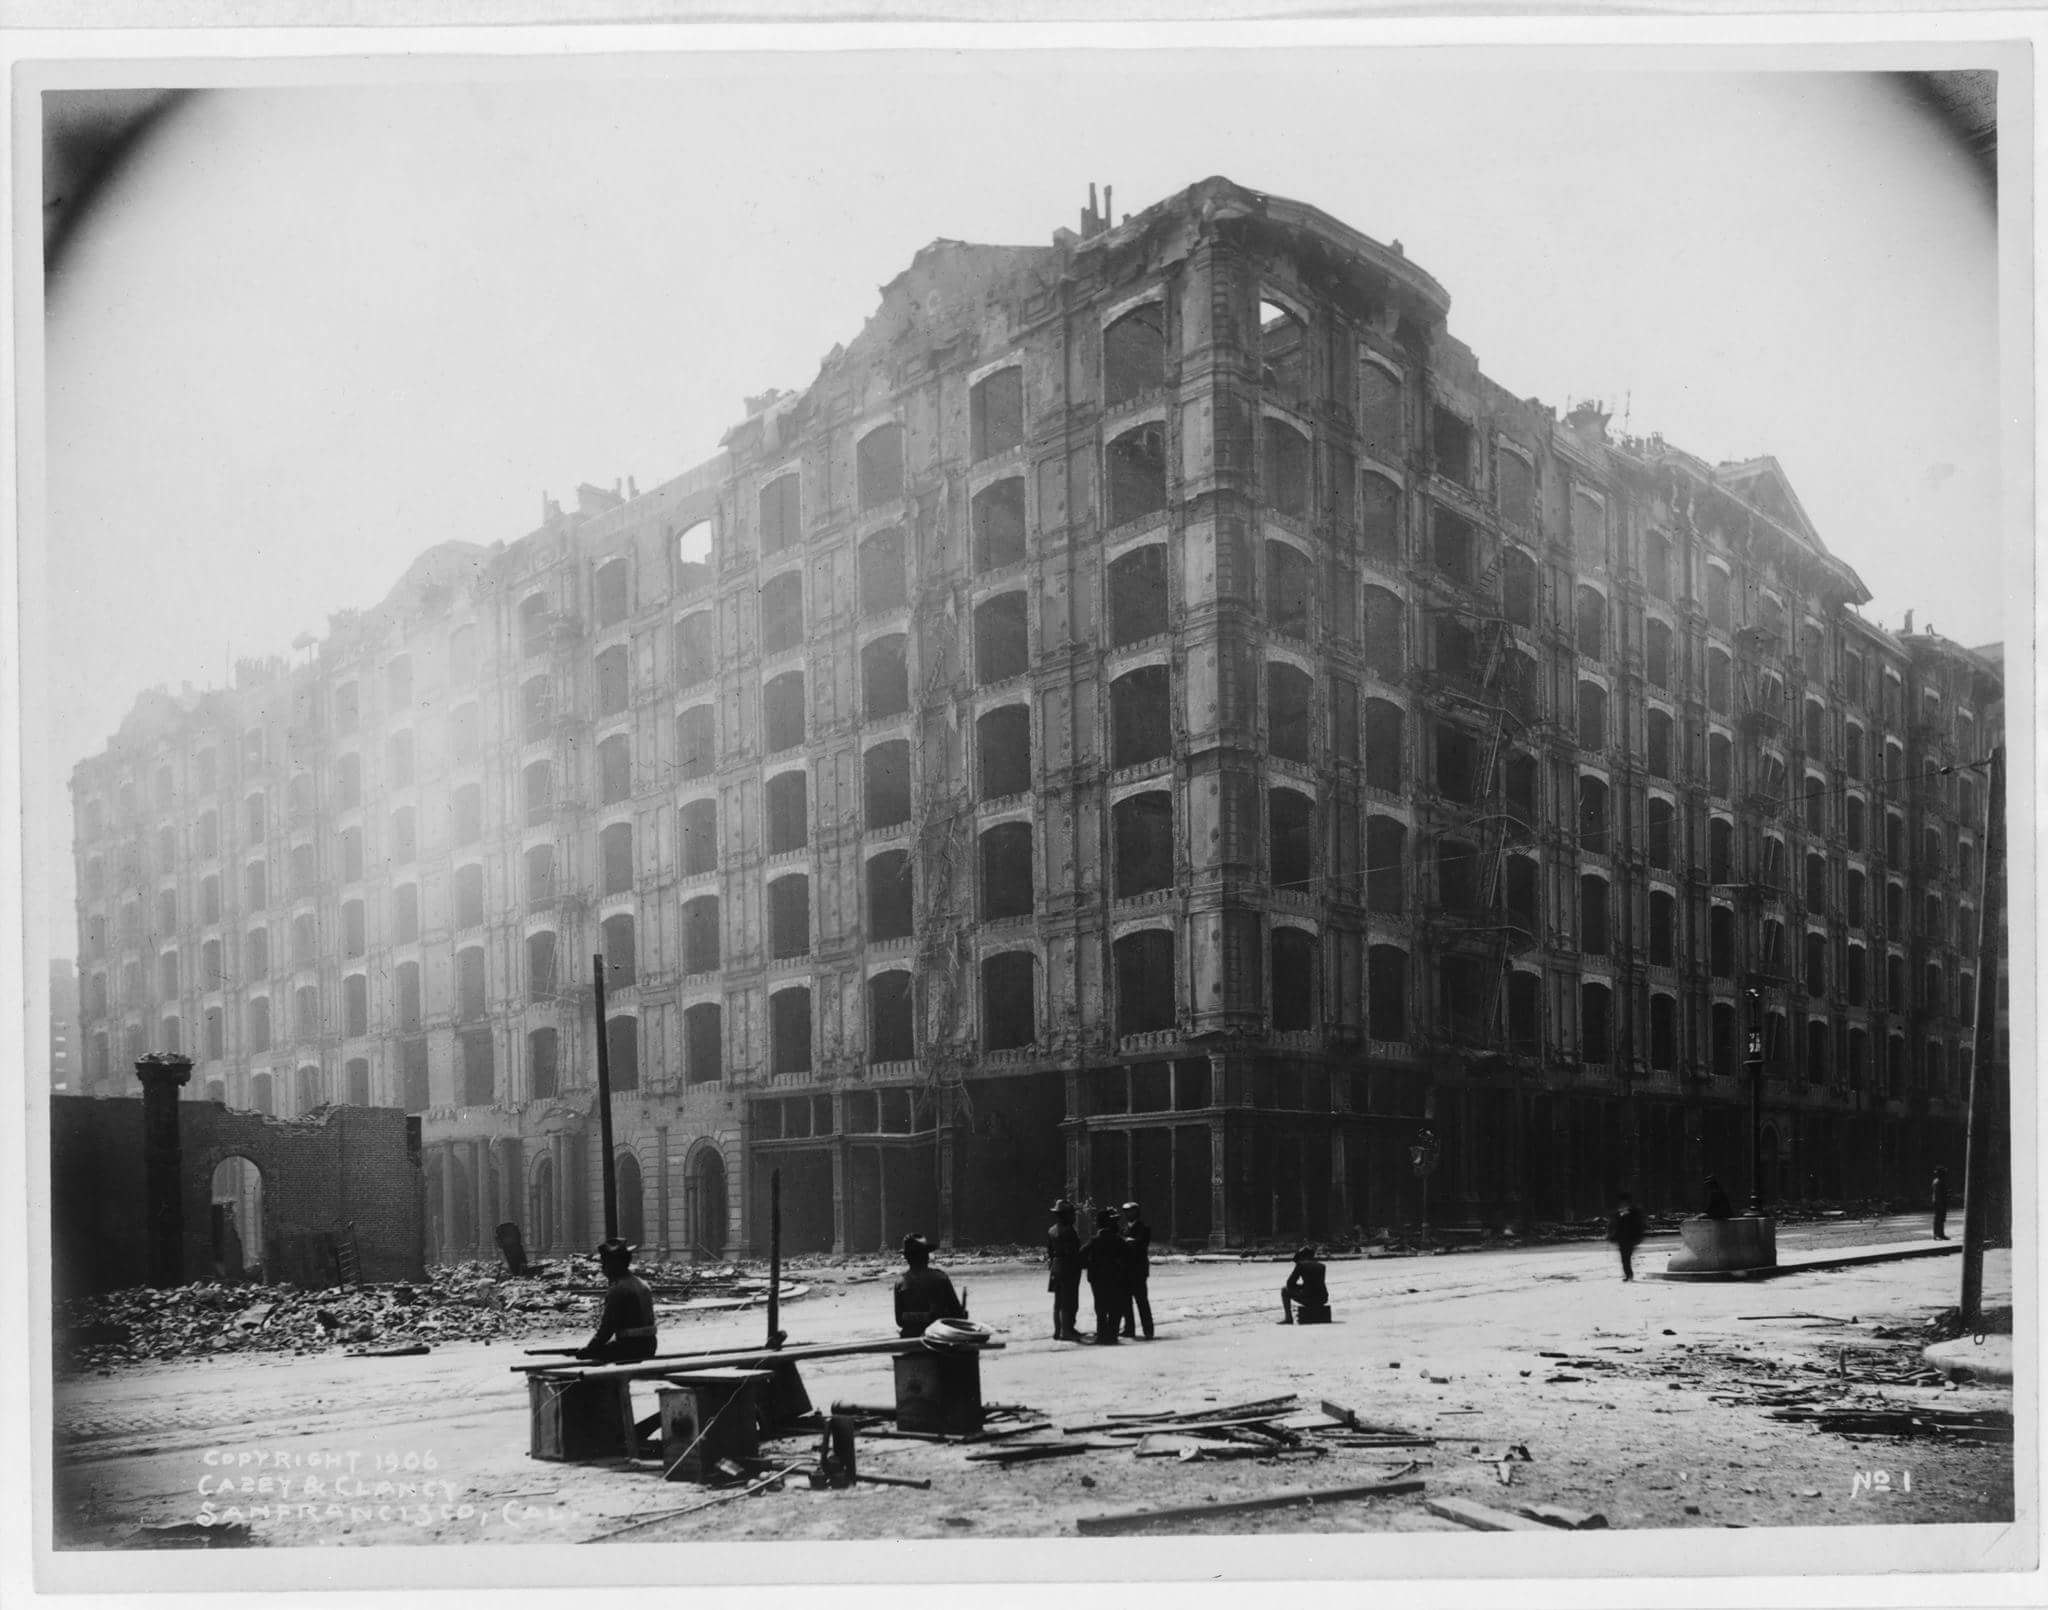 After the quake, fires destroyed the Grand completely and left the Palace burned out and structurally unsound. Was reopened after being rebuilt in 1909.